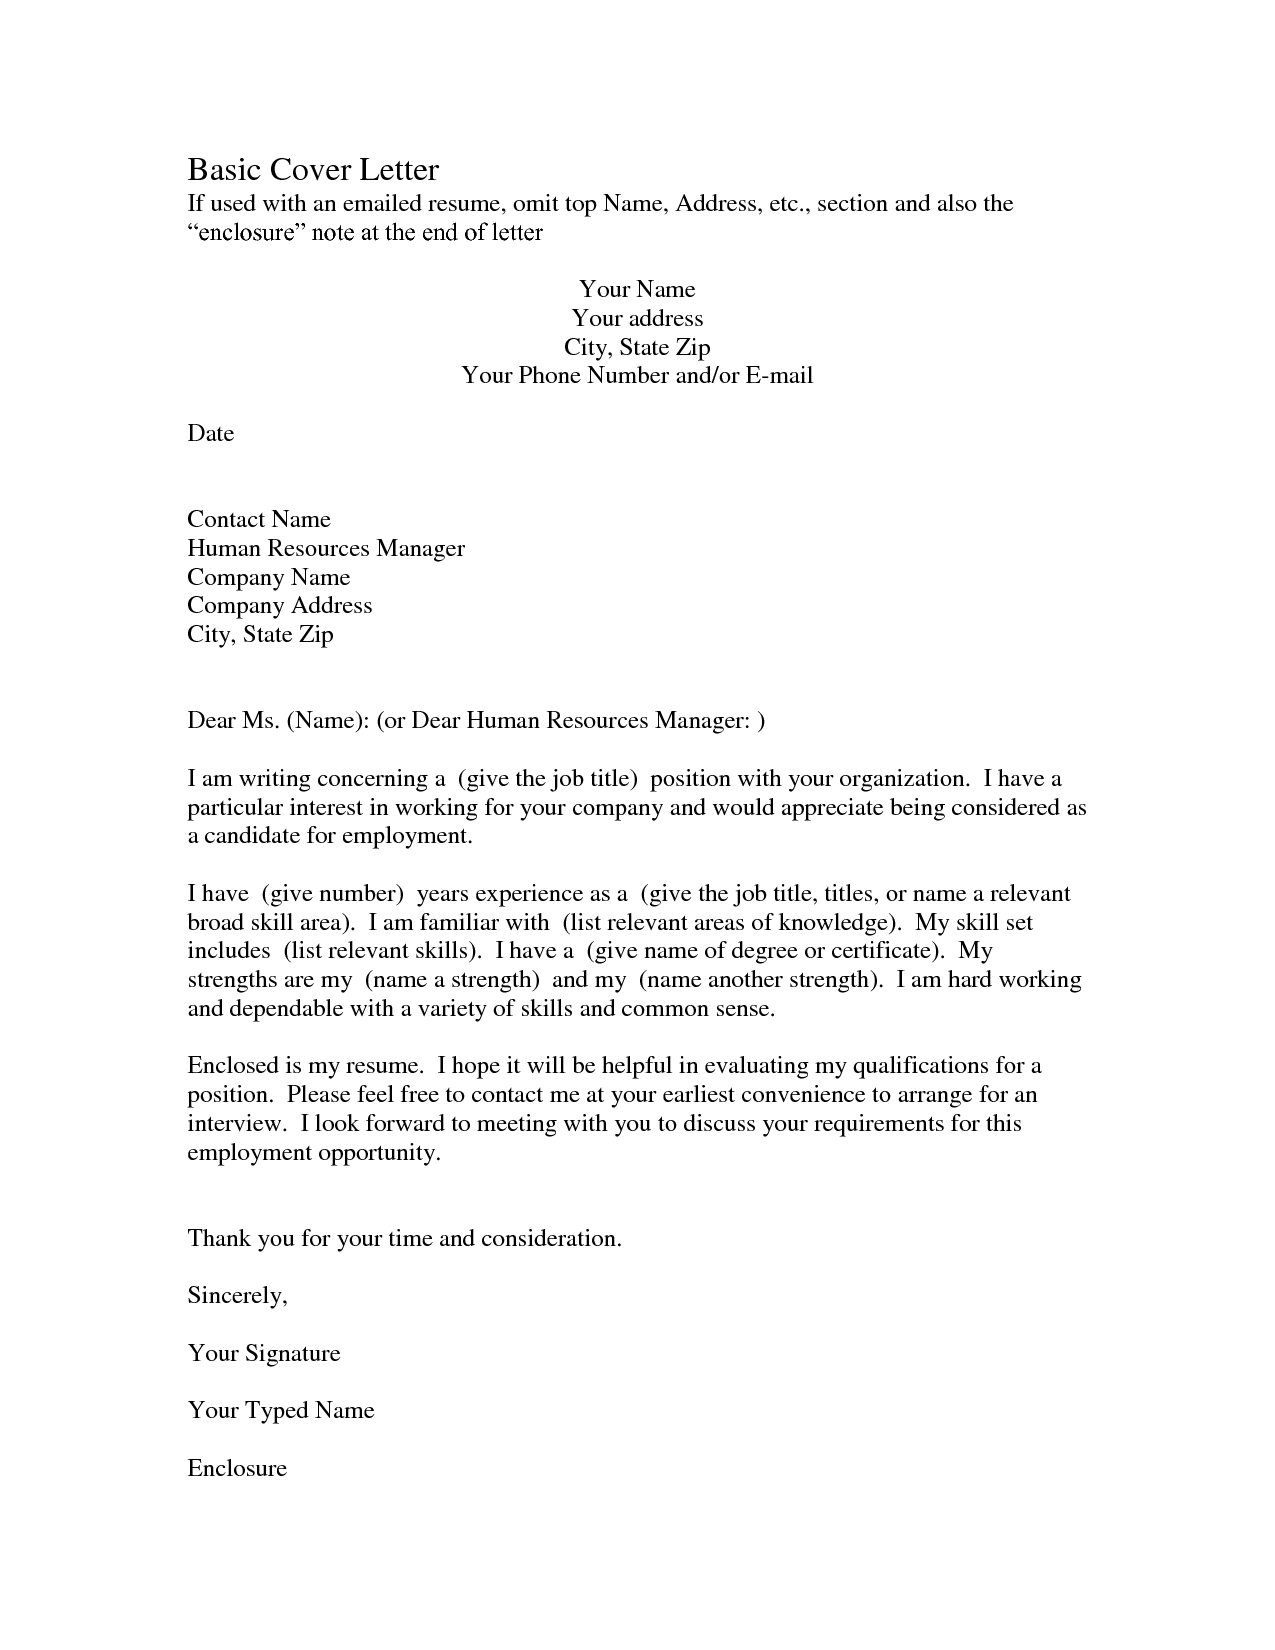 covering letter example simple cover letter examplesimple cover letter application letter sample - What Is A Cover Letter Used For